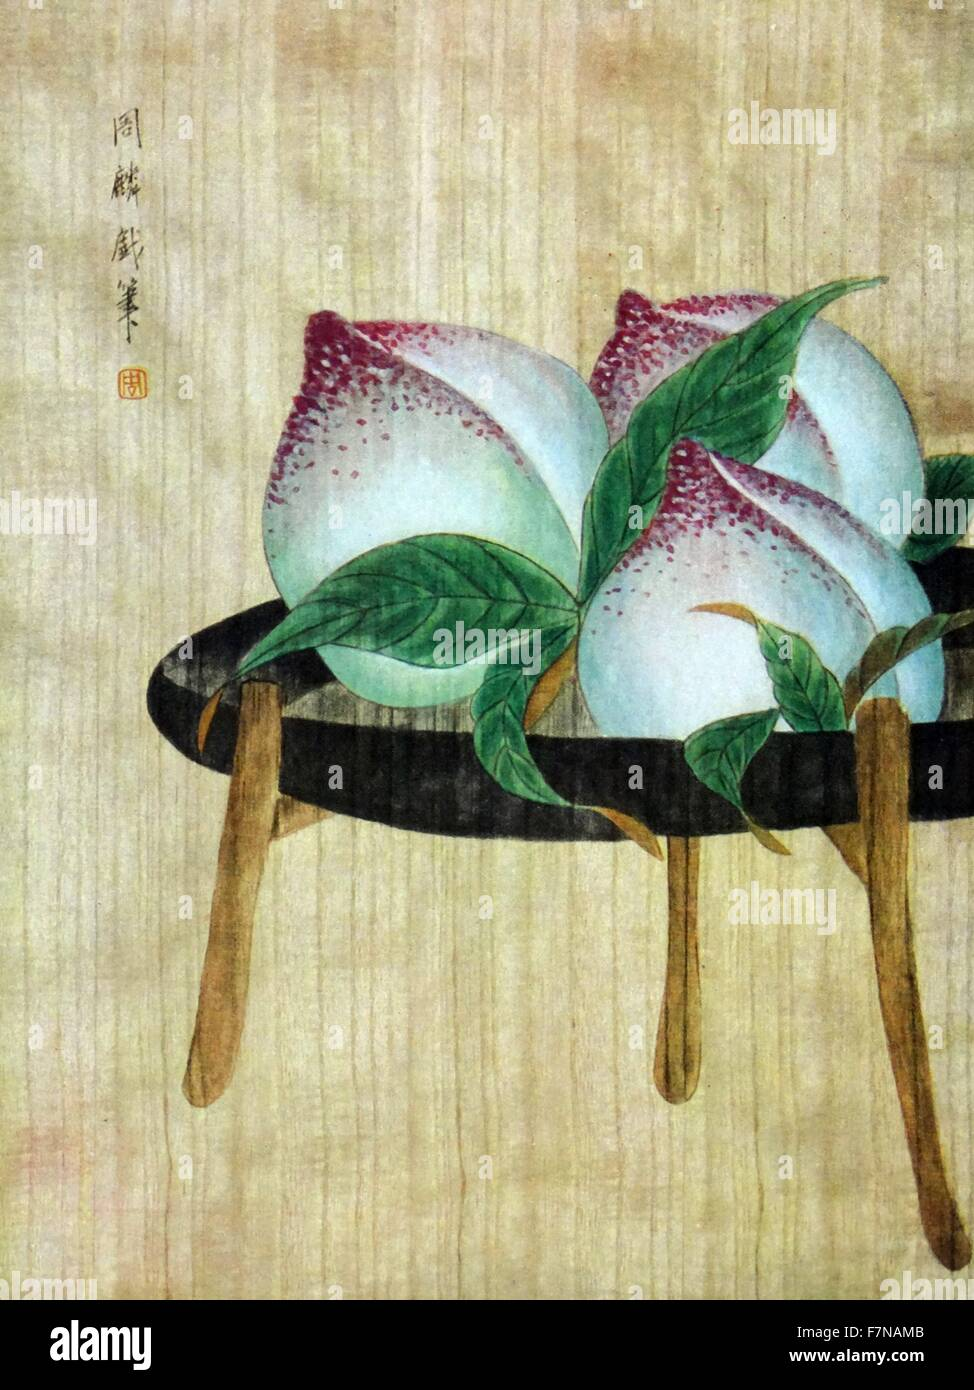 Zhou Ling 'Peaches' early 20th century, chinese still life painting - Stock Image